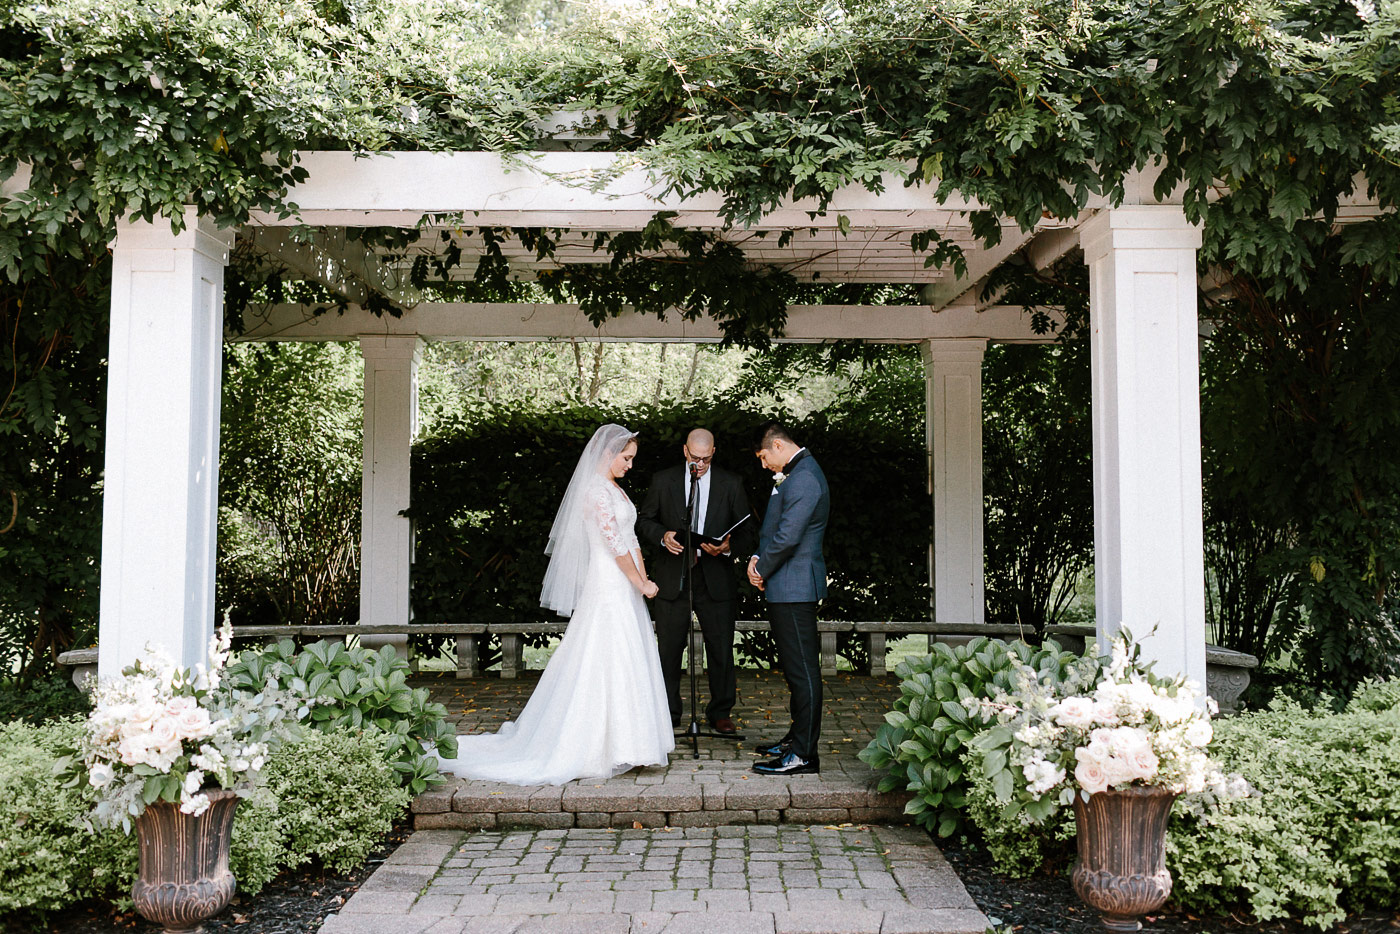 Wellers-Carriage-House-Wedding-Photographer-19.jpg